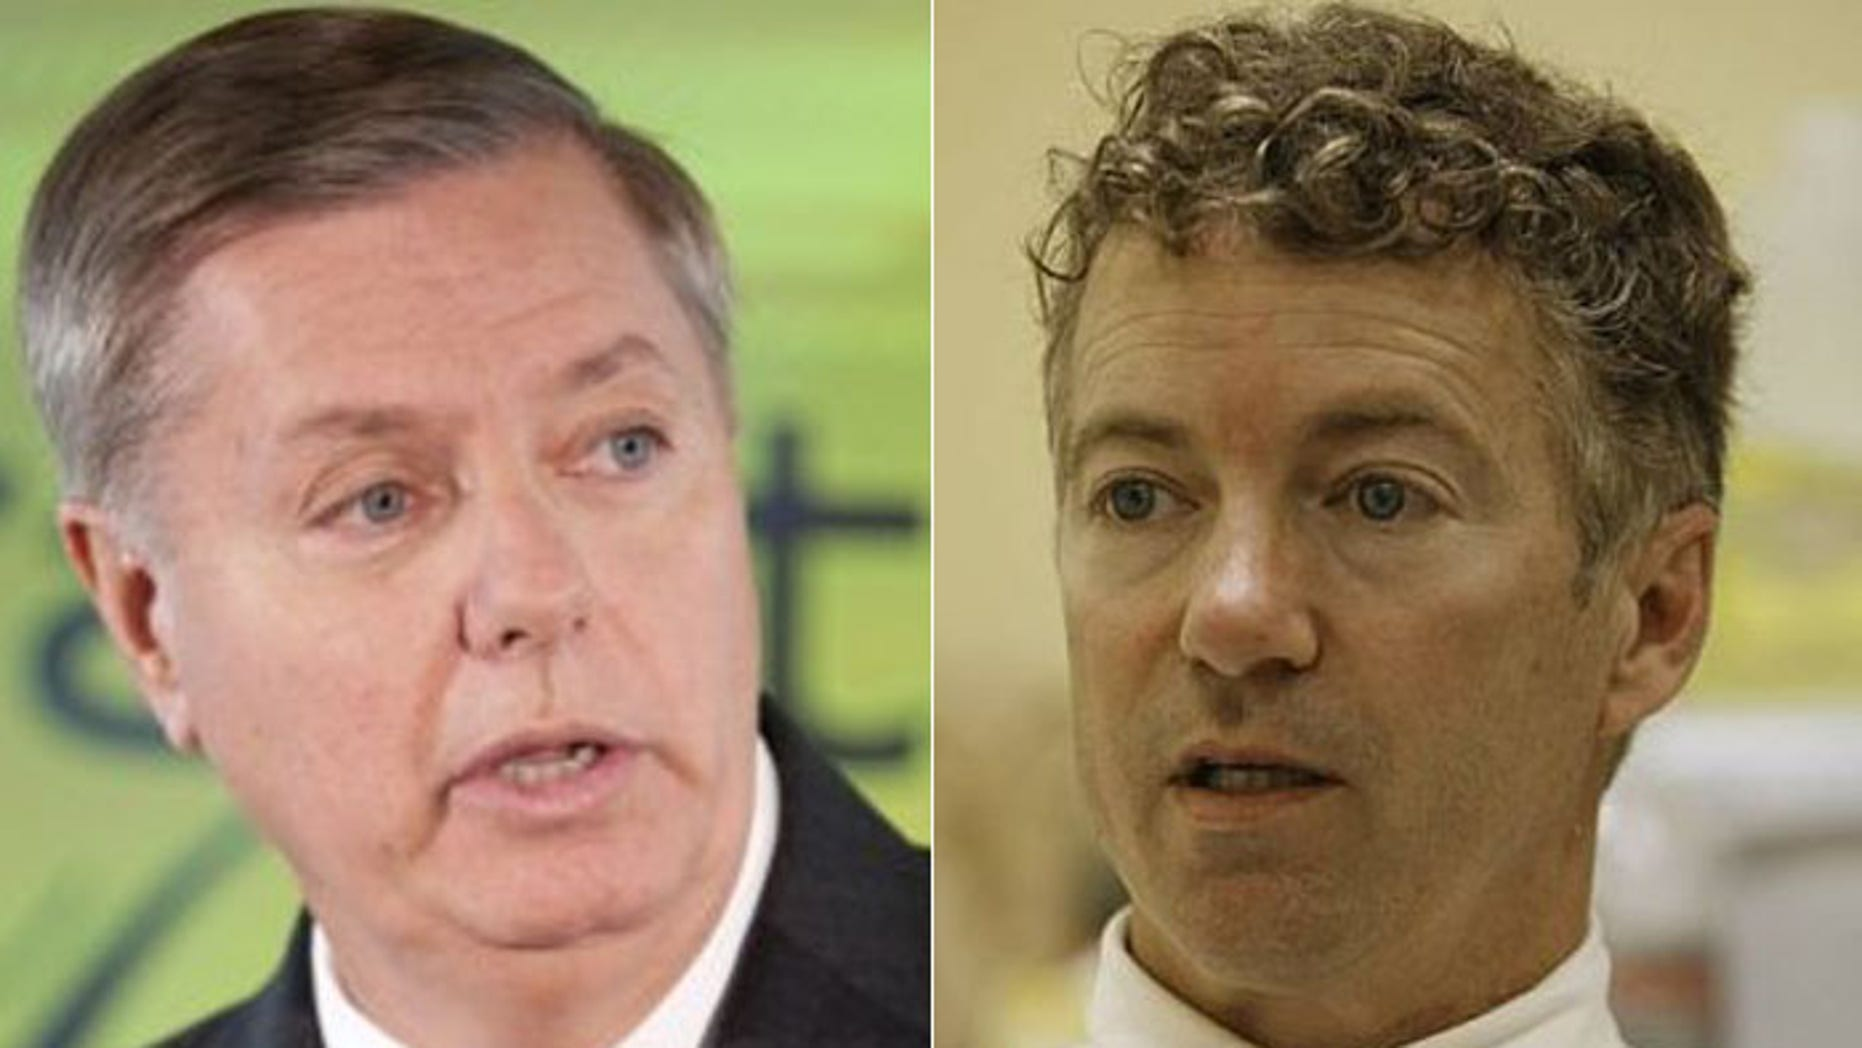 """Senators Lindsay Graham (l.) and Rand Paul (r.) agree that the Guantanamo Bay detainees are """"crazy bastards,"""" but disagree on what to do with them. (AP)"""